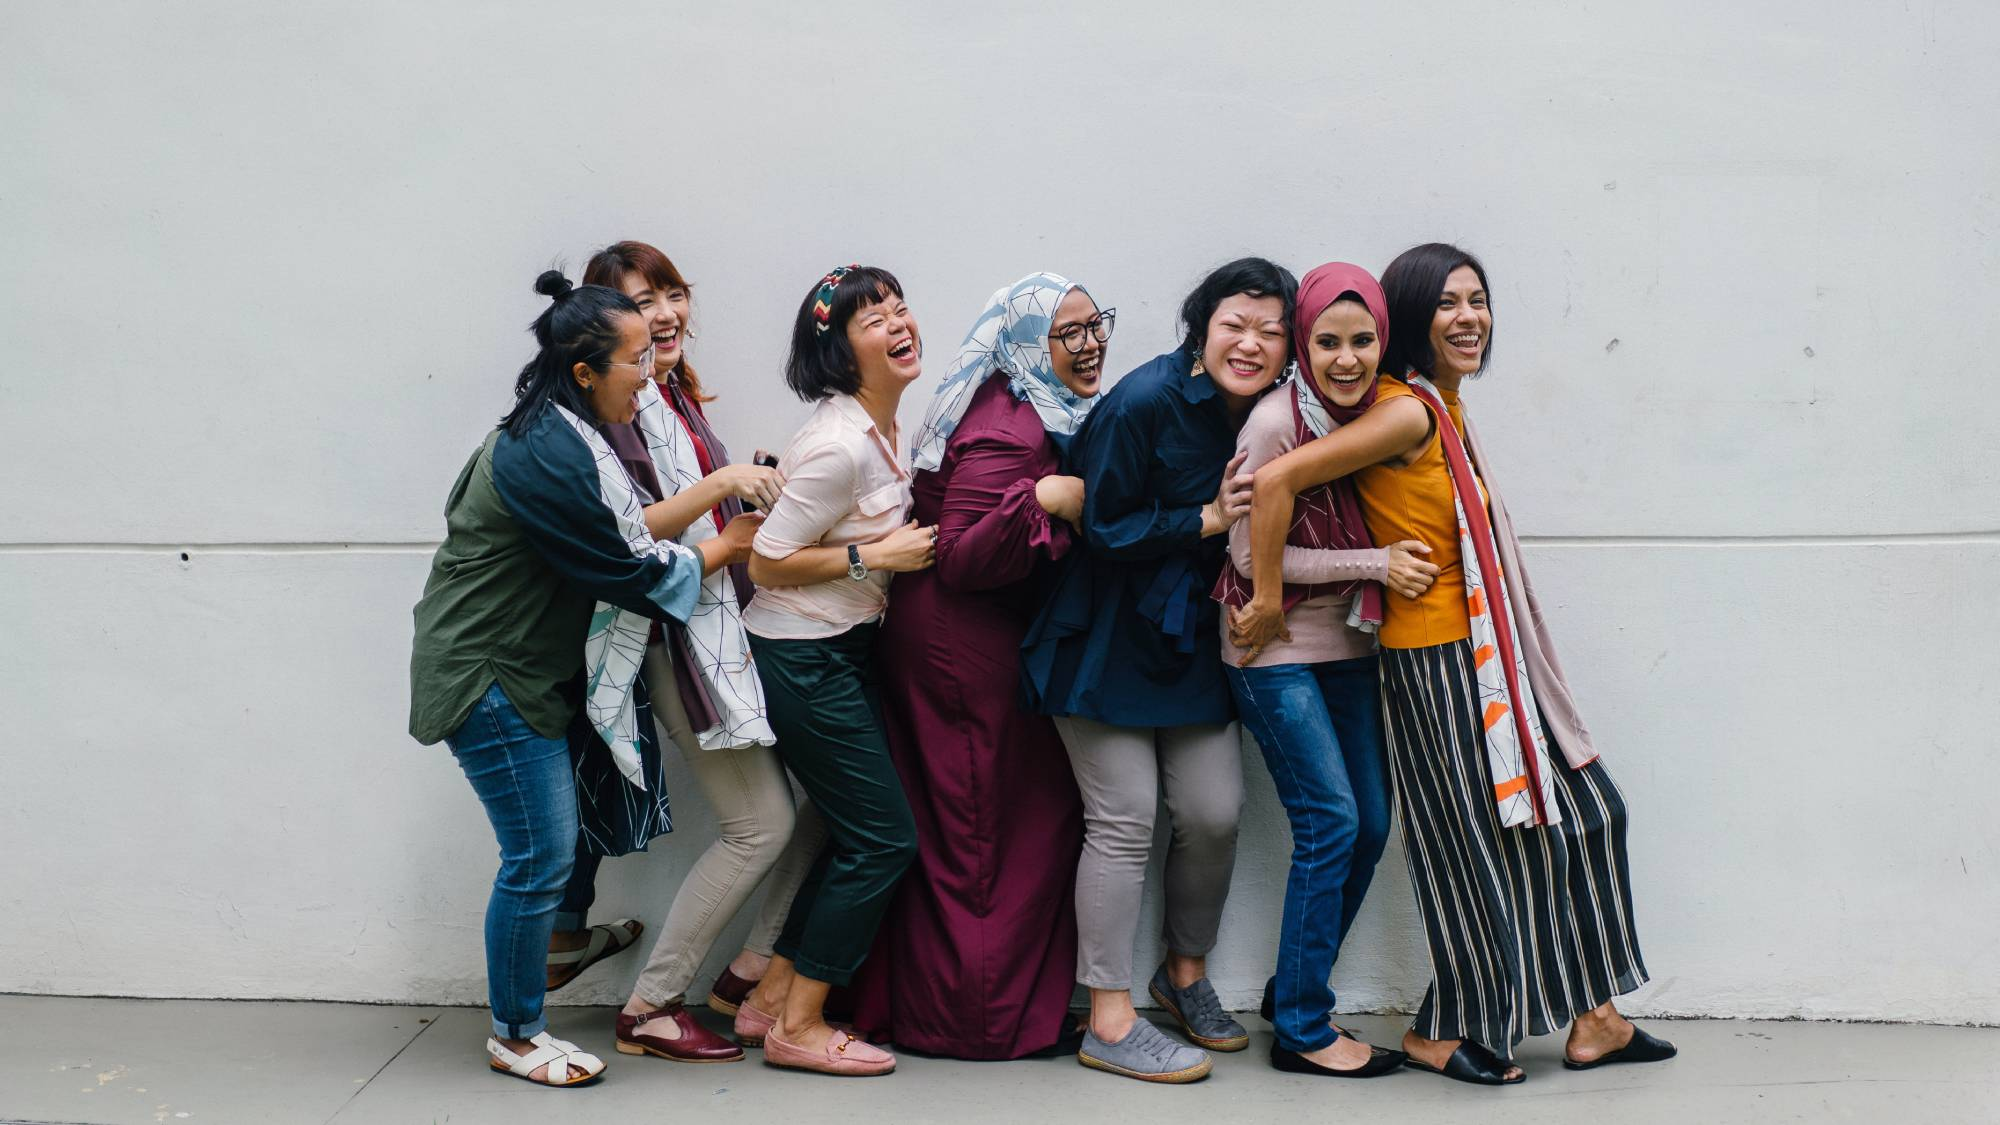 Seven women on the street laughing.